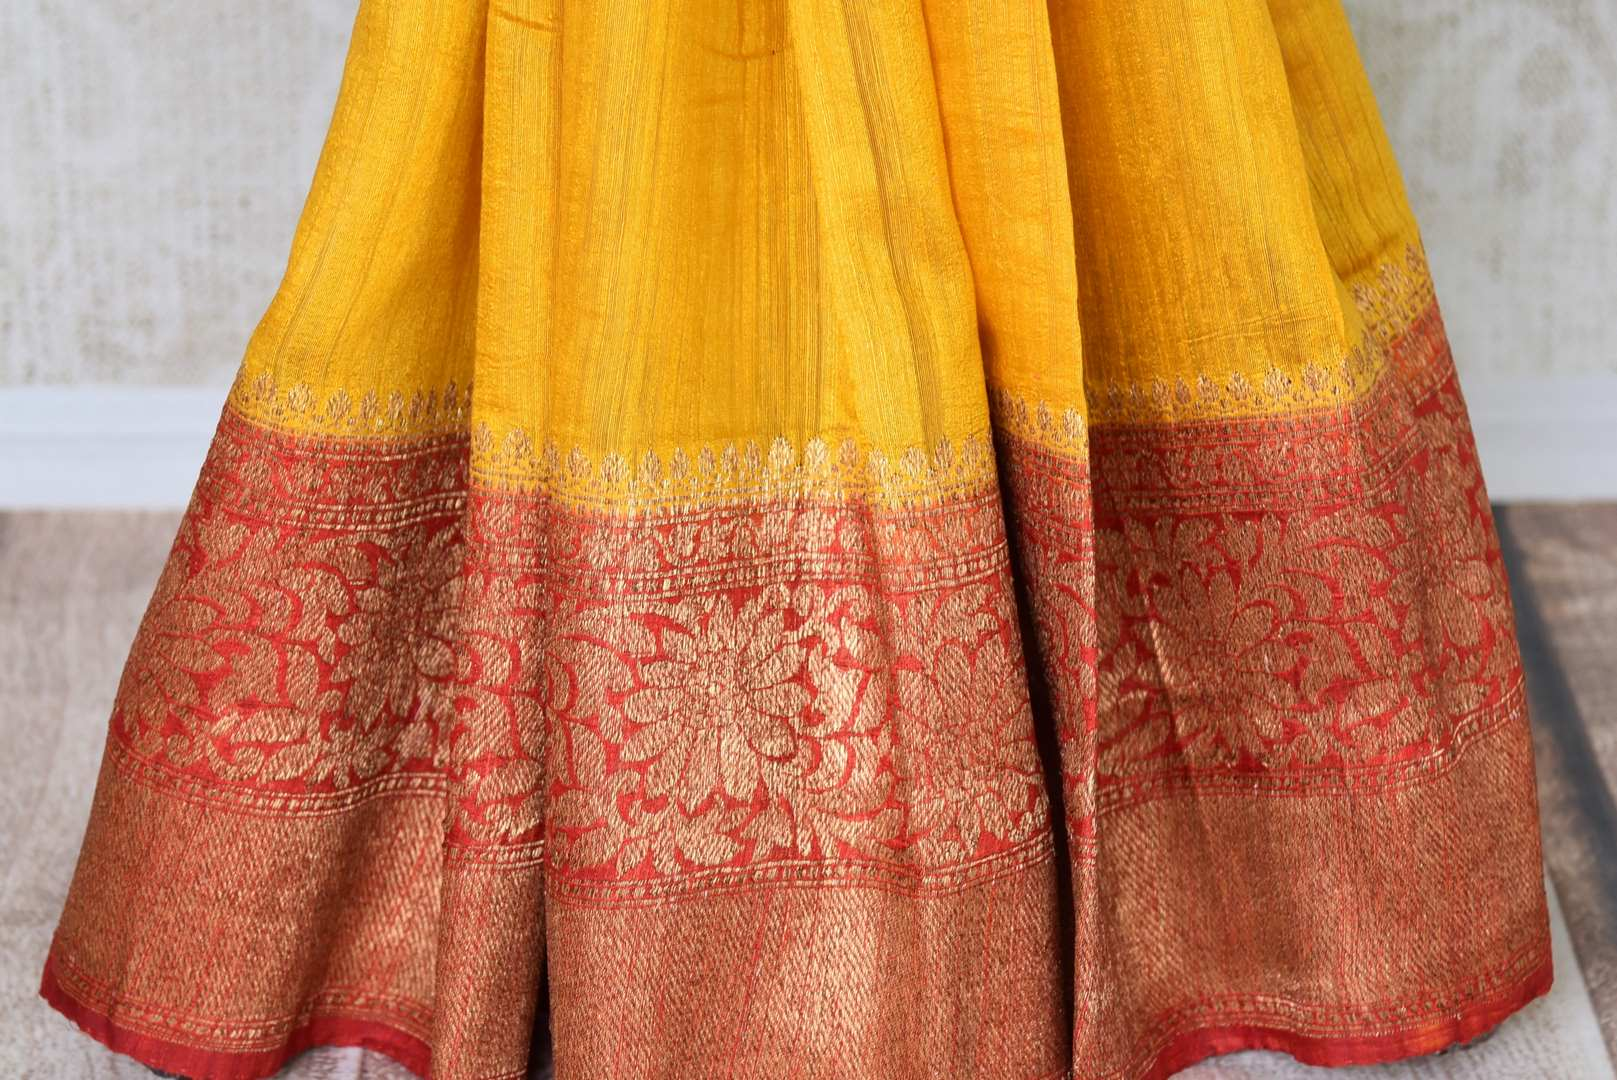 Exude a flair of elegance in this scintillating bright yellow matka banarsi silk saree. It comes with a gorgeous red zari border and complemented well with a contrasting red zari designer blouse. Shop handcrafted silk sarees, linen sari, georgette saree online or visit Pure Elegance store, USA.-pleats